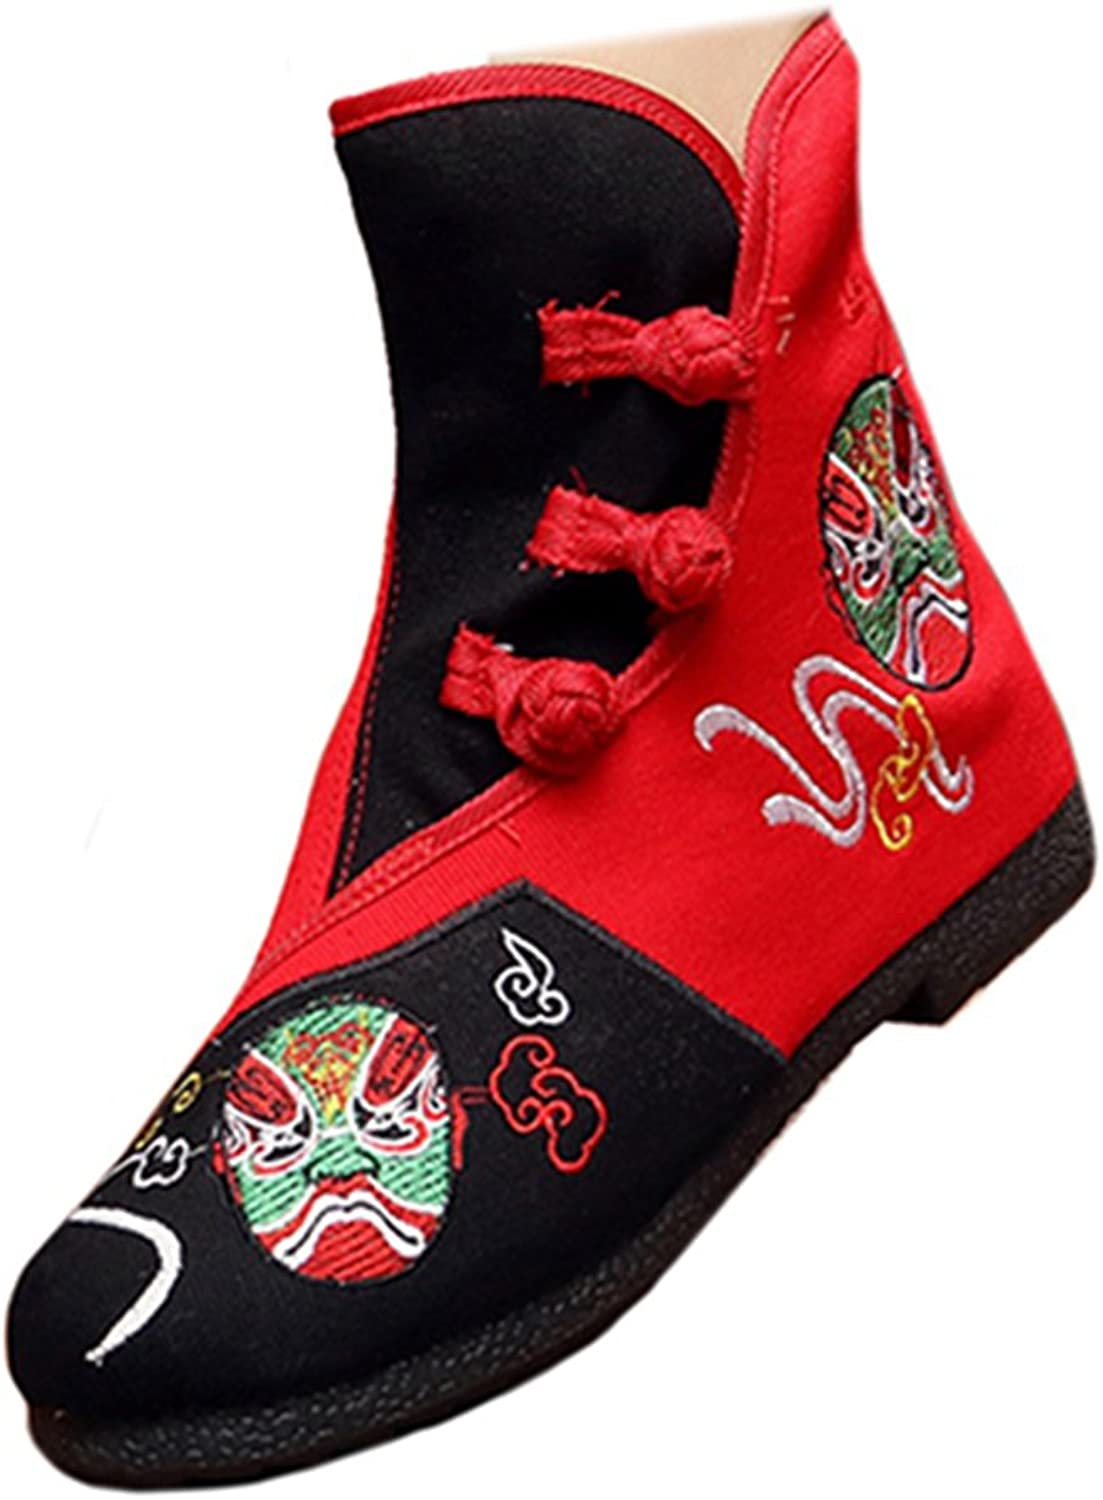 Shenghuajie Vintage Beijing Cloth shoes Embroidered Boots 12-08 Black + red